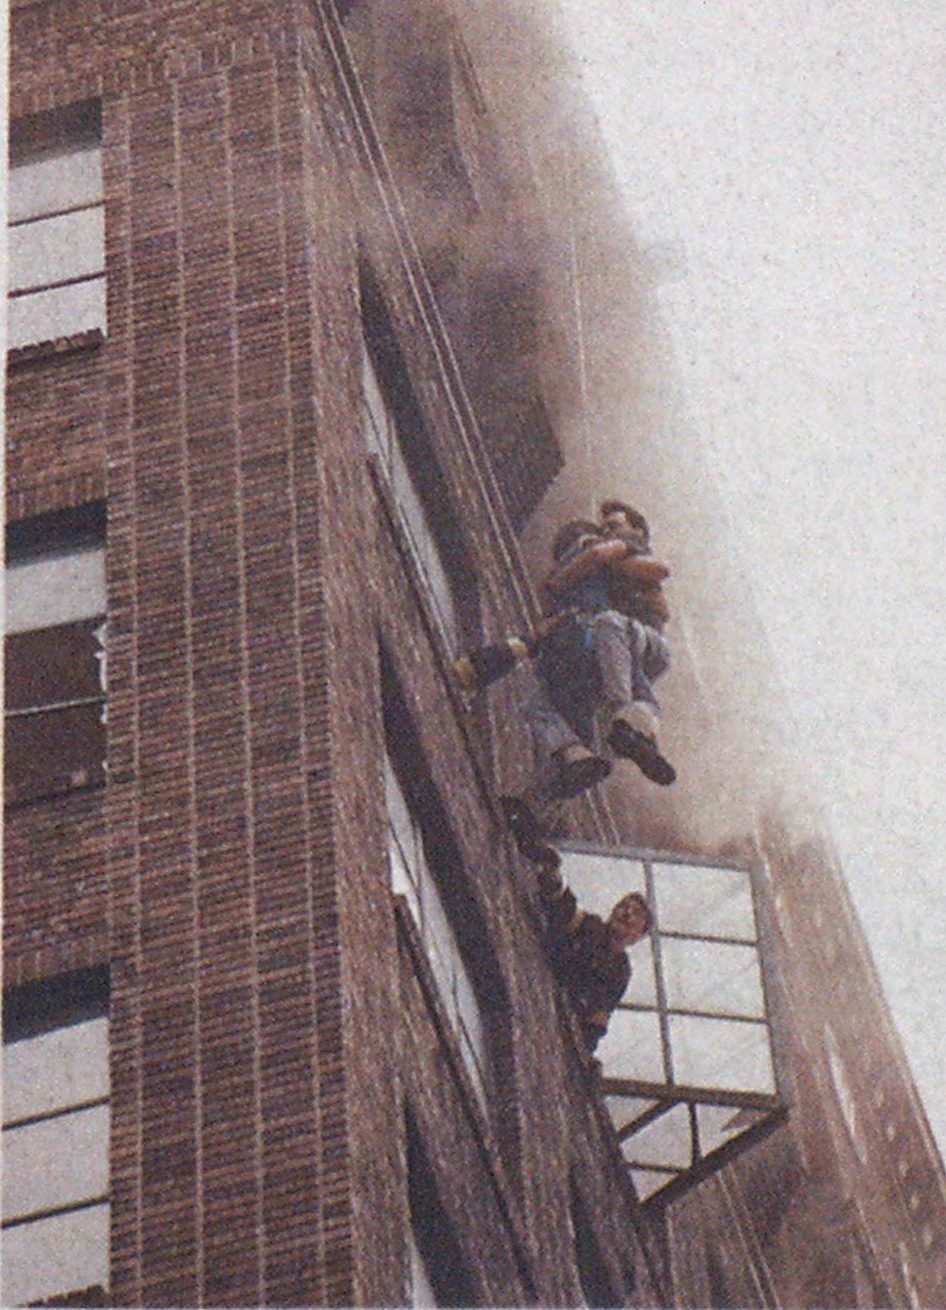 Two 12th-floor occupants, unable to escape through interior passages, were driven onto window ledges, where they still were exposed to heavy heat